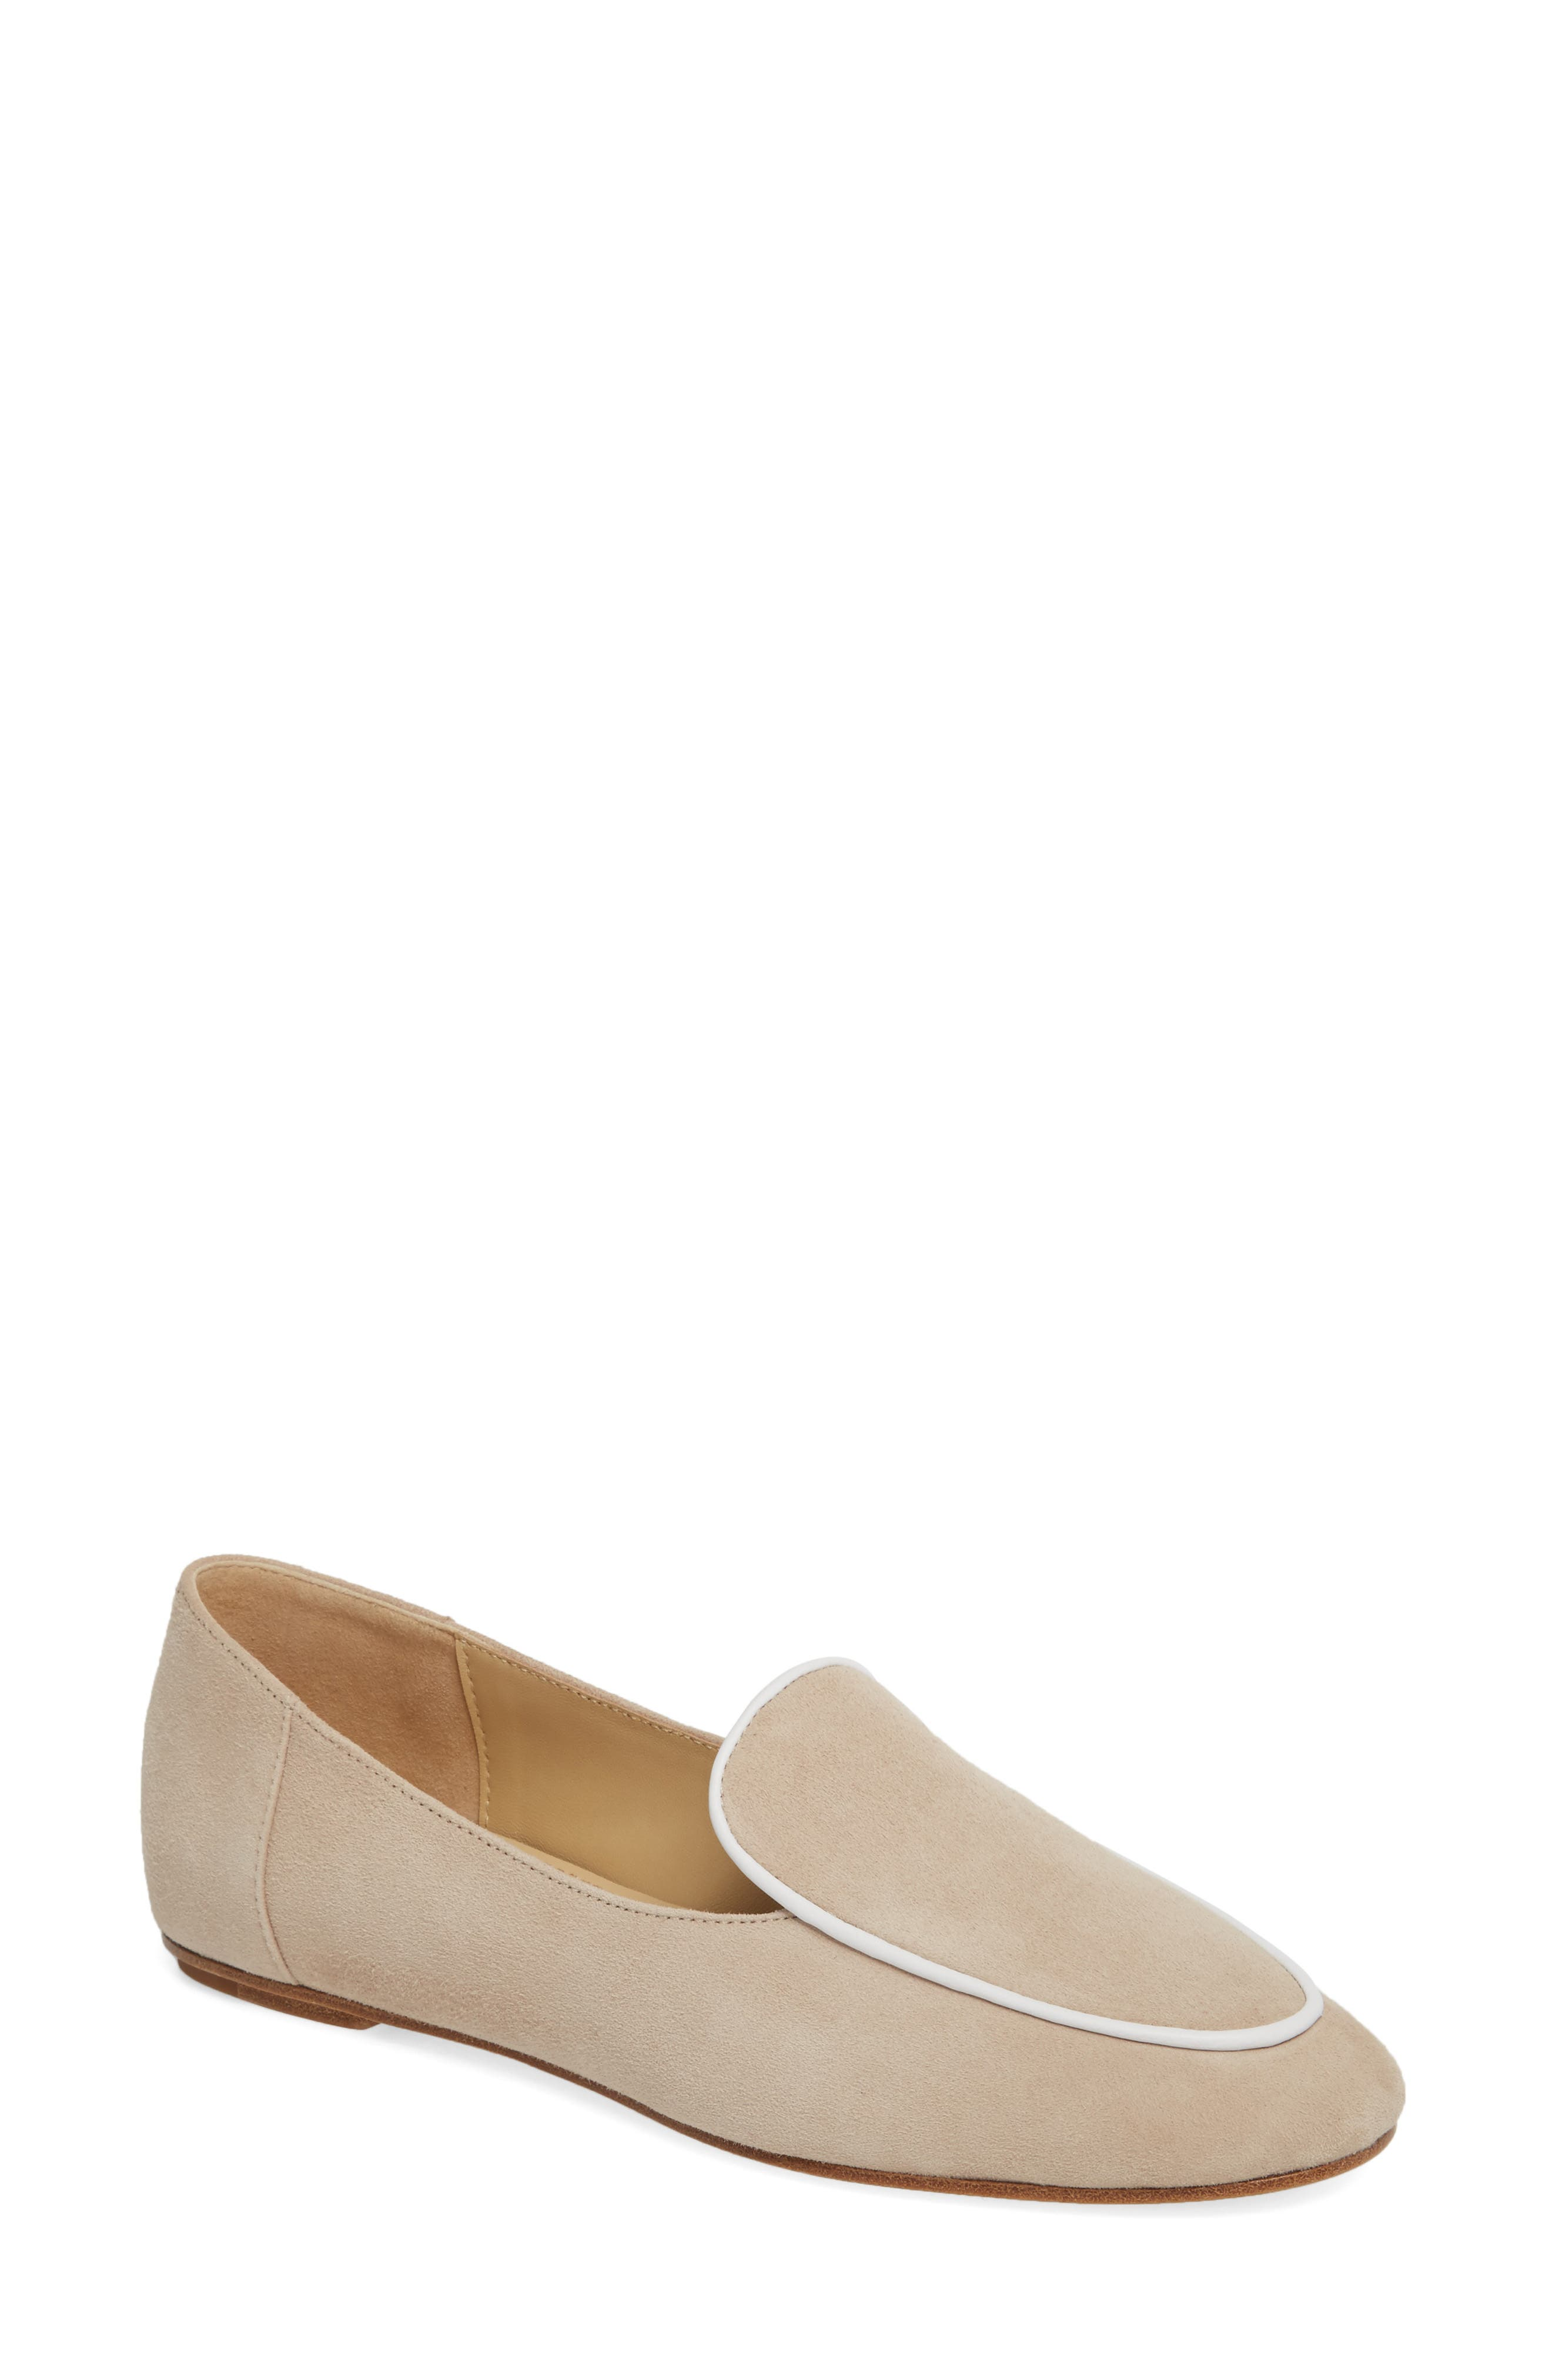 Etienne Aigner Camille Loafer (Women)